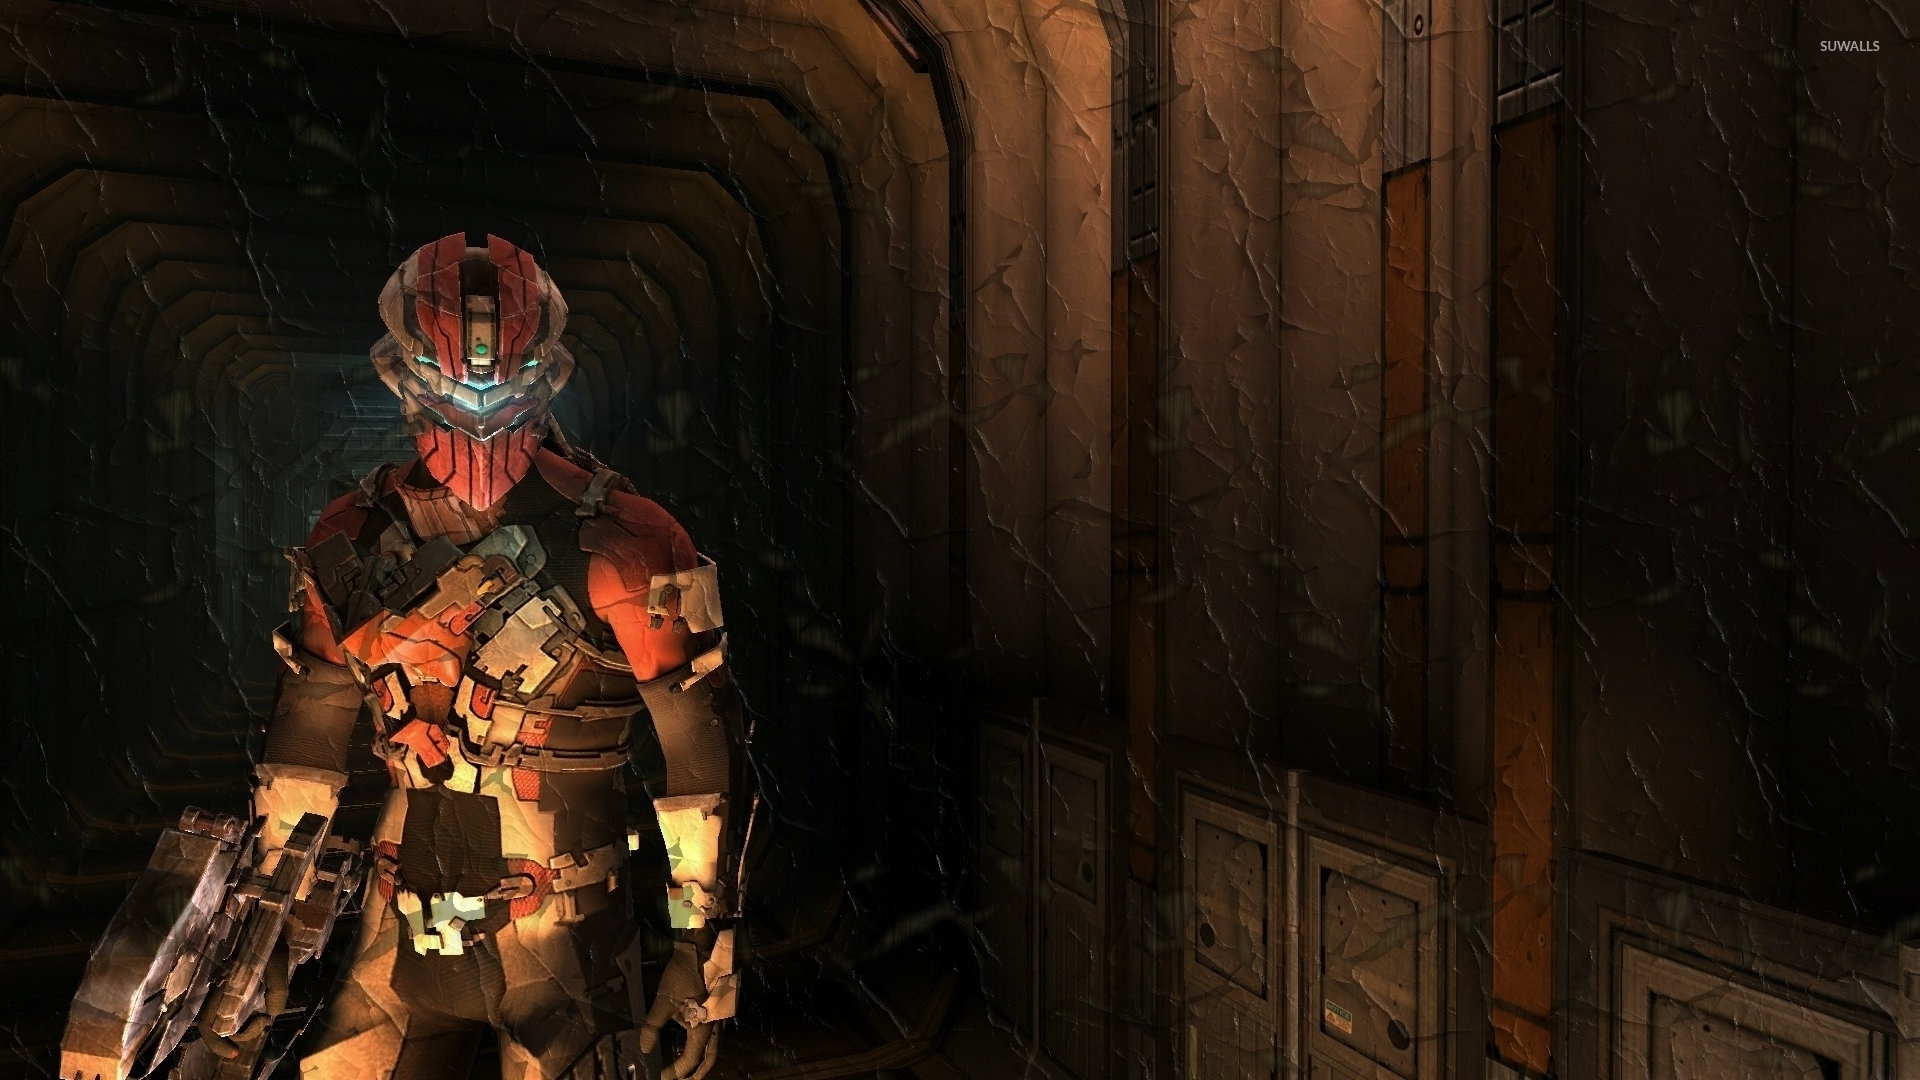 Isaac Clarke Dead Space 2 Wallpaper Game Wallpapers 45379